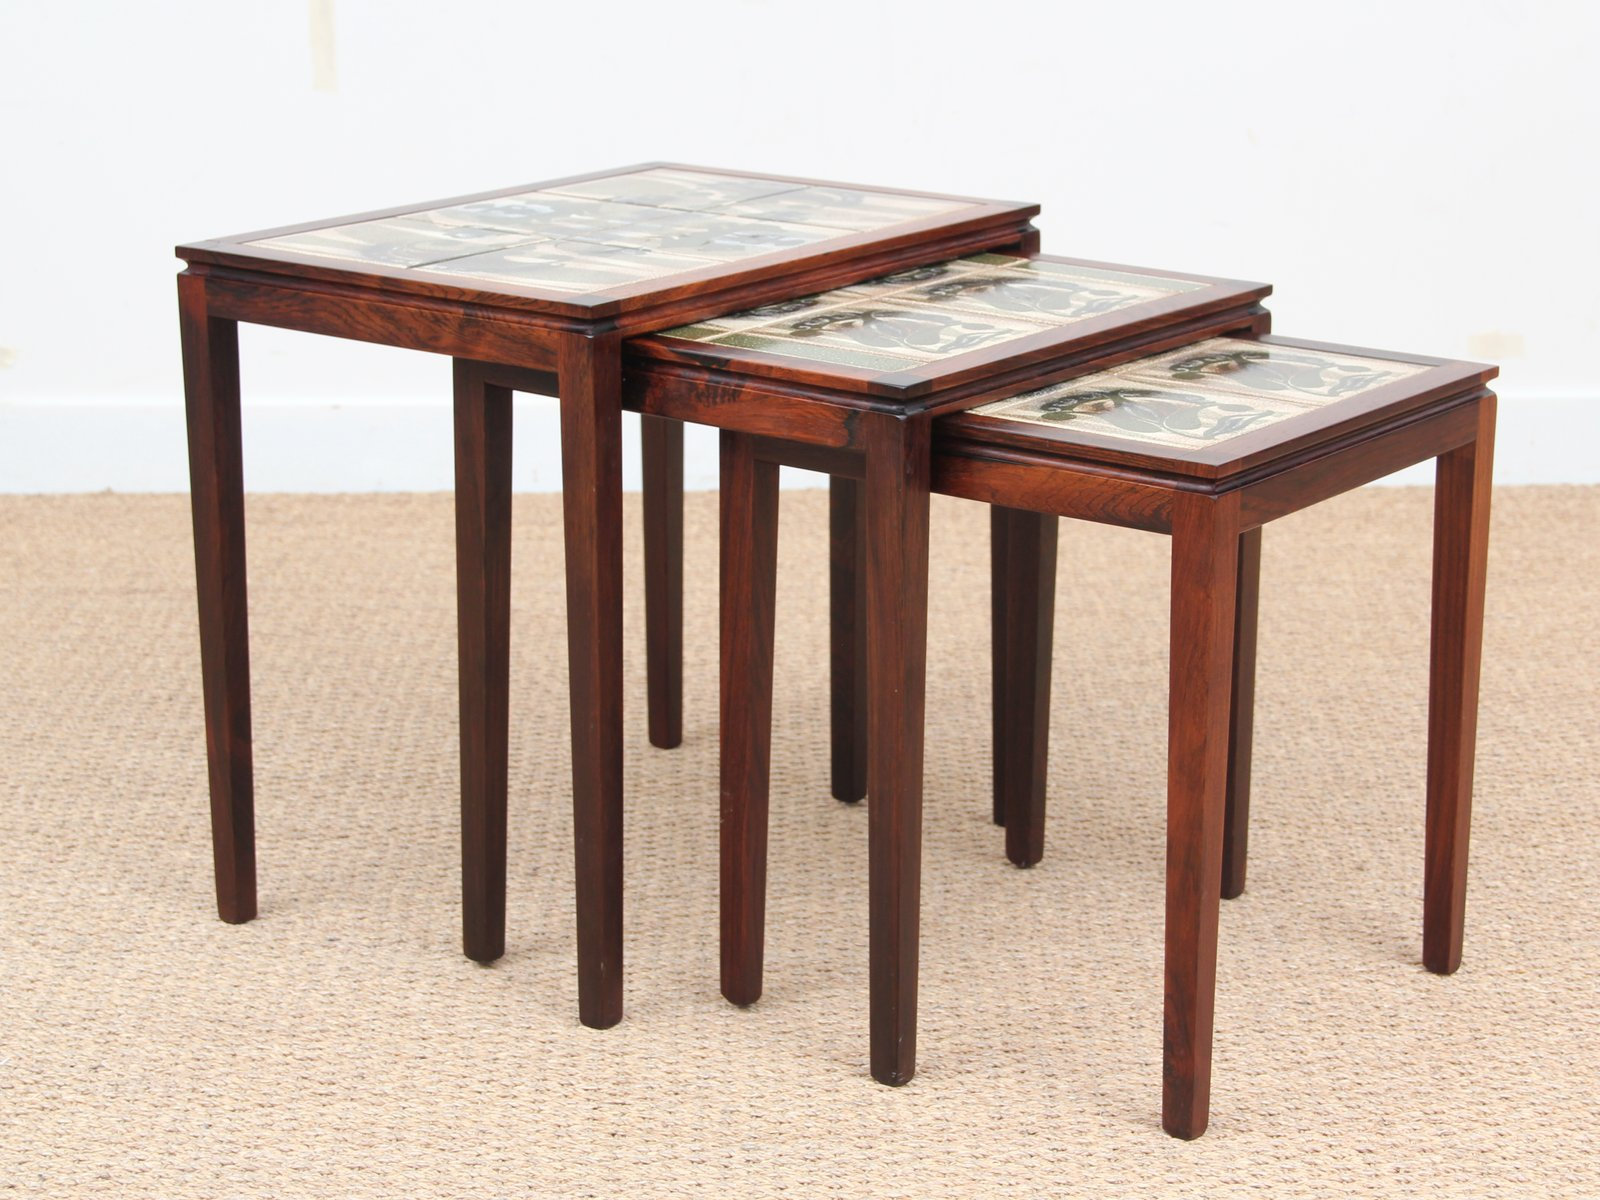 Scandinavian Rio Rosewood Nesting Tables with Ceramic Tiles 1950s